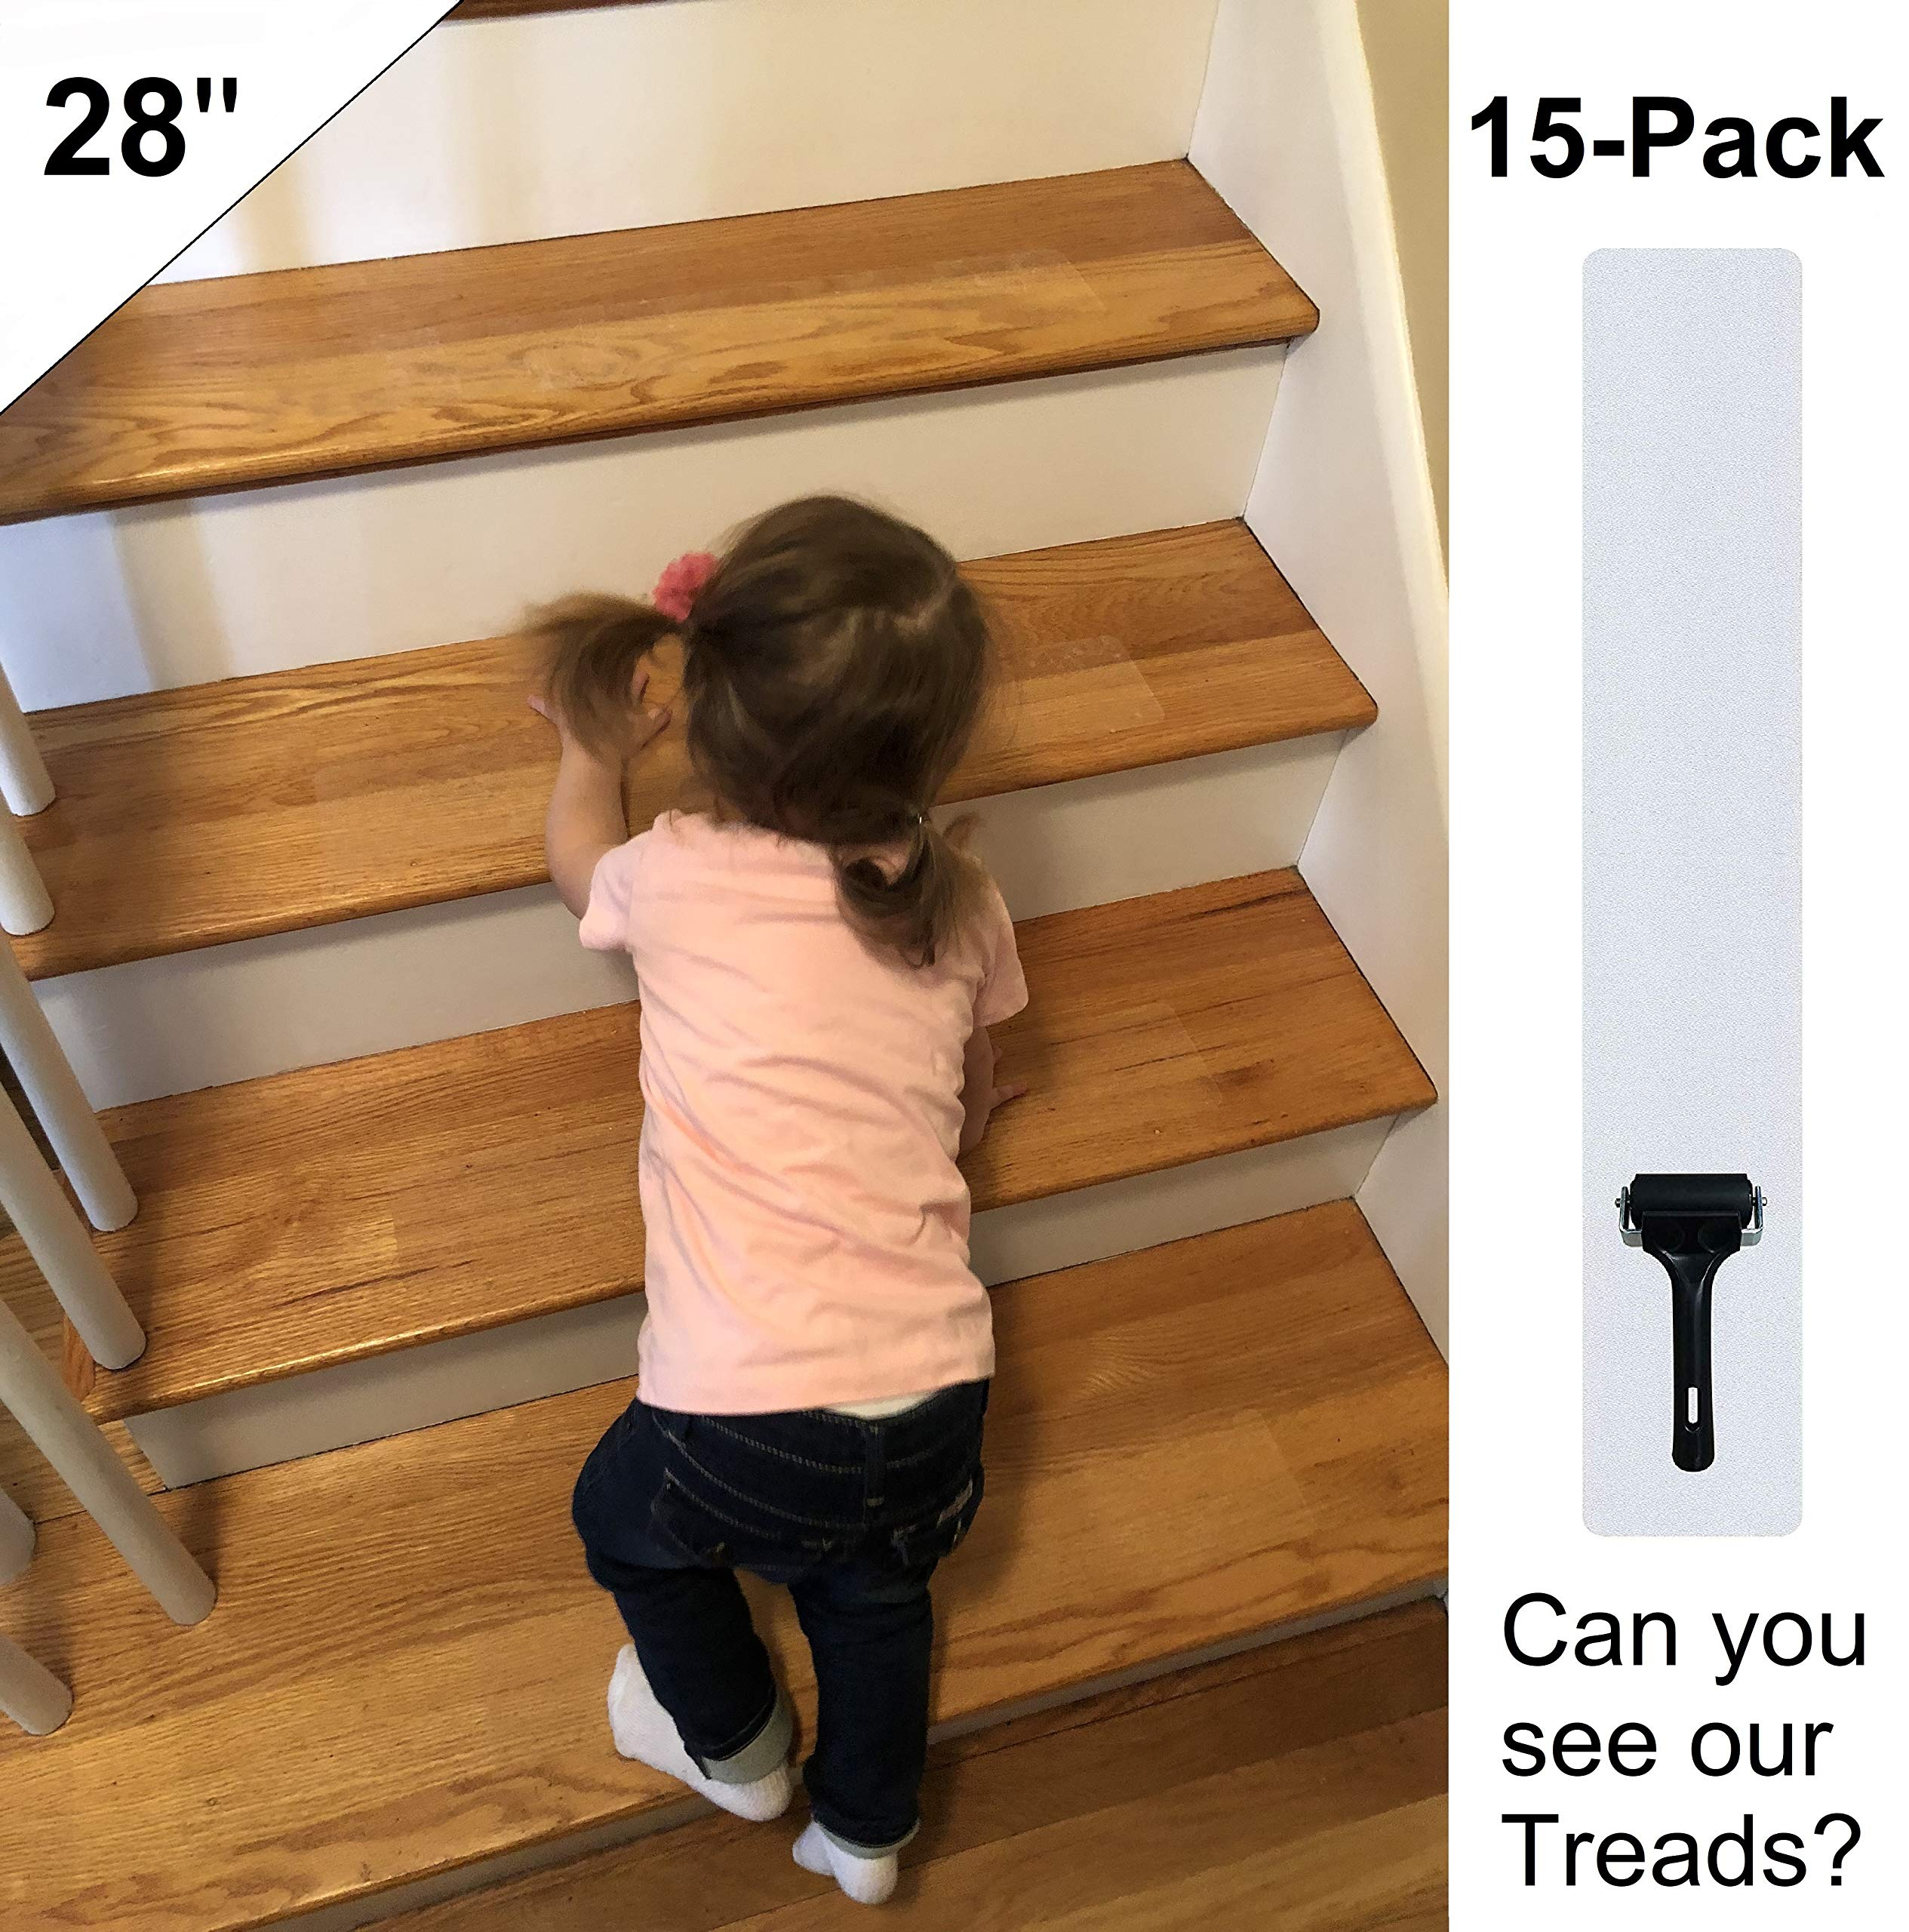 Anti Slip Stair Treads Non-Slip Clear Tape (15-PACK) Premium Home 28''x4'' Transparent,No Stair Damage! NON-Abrasive for Child Safety, Pets Elders Indoor Outdoor Waterproof, Easy Adhesive Install NO PVC by PREMIUM HOME PHG